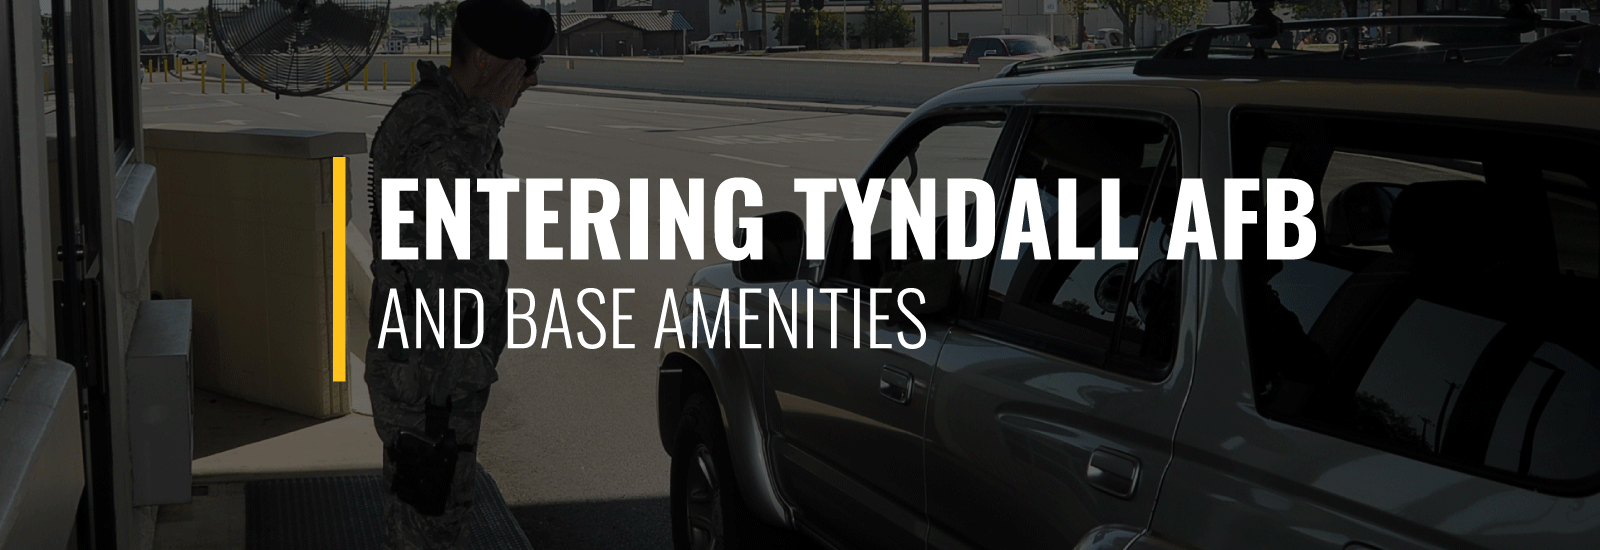 Entering Tyndall Air Force Base and Amenities